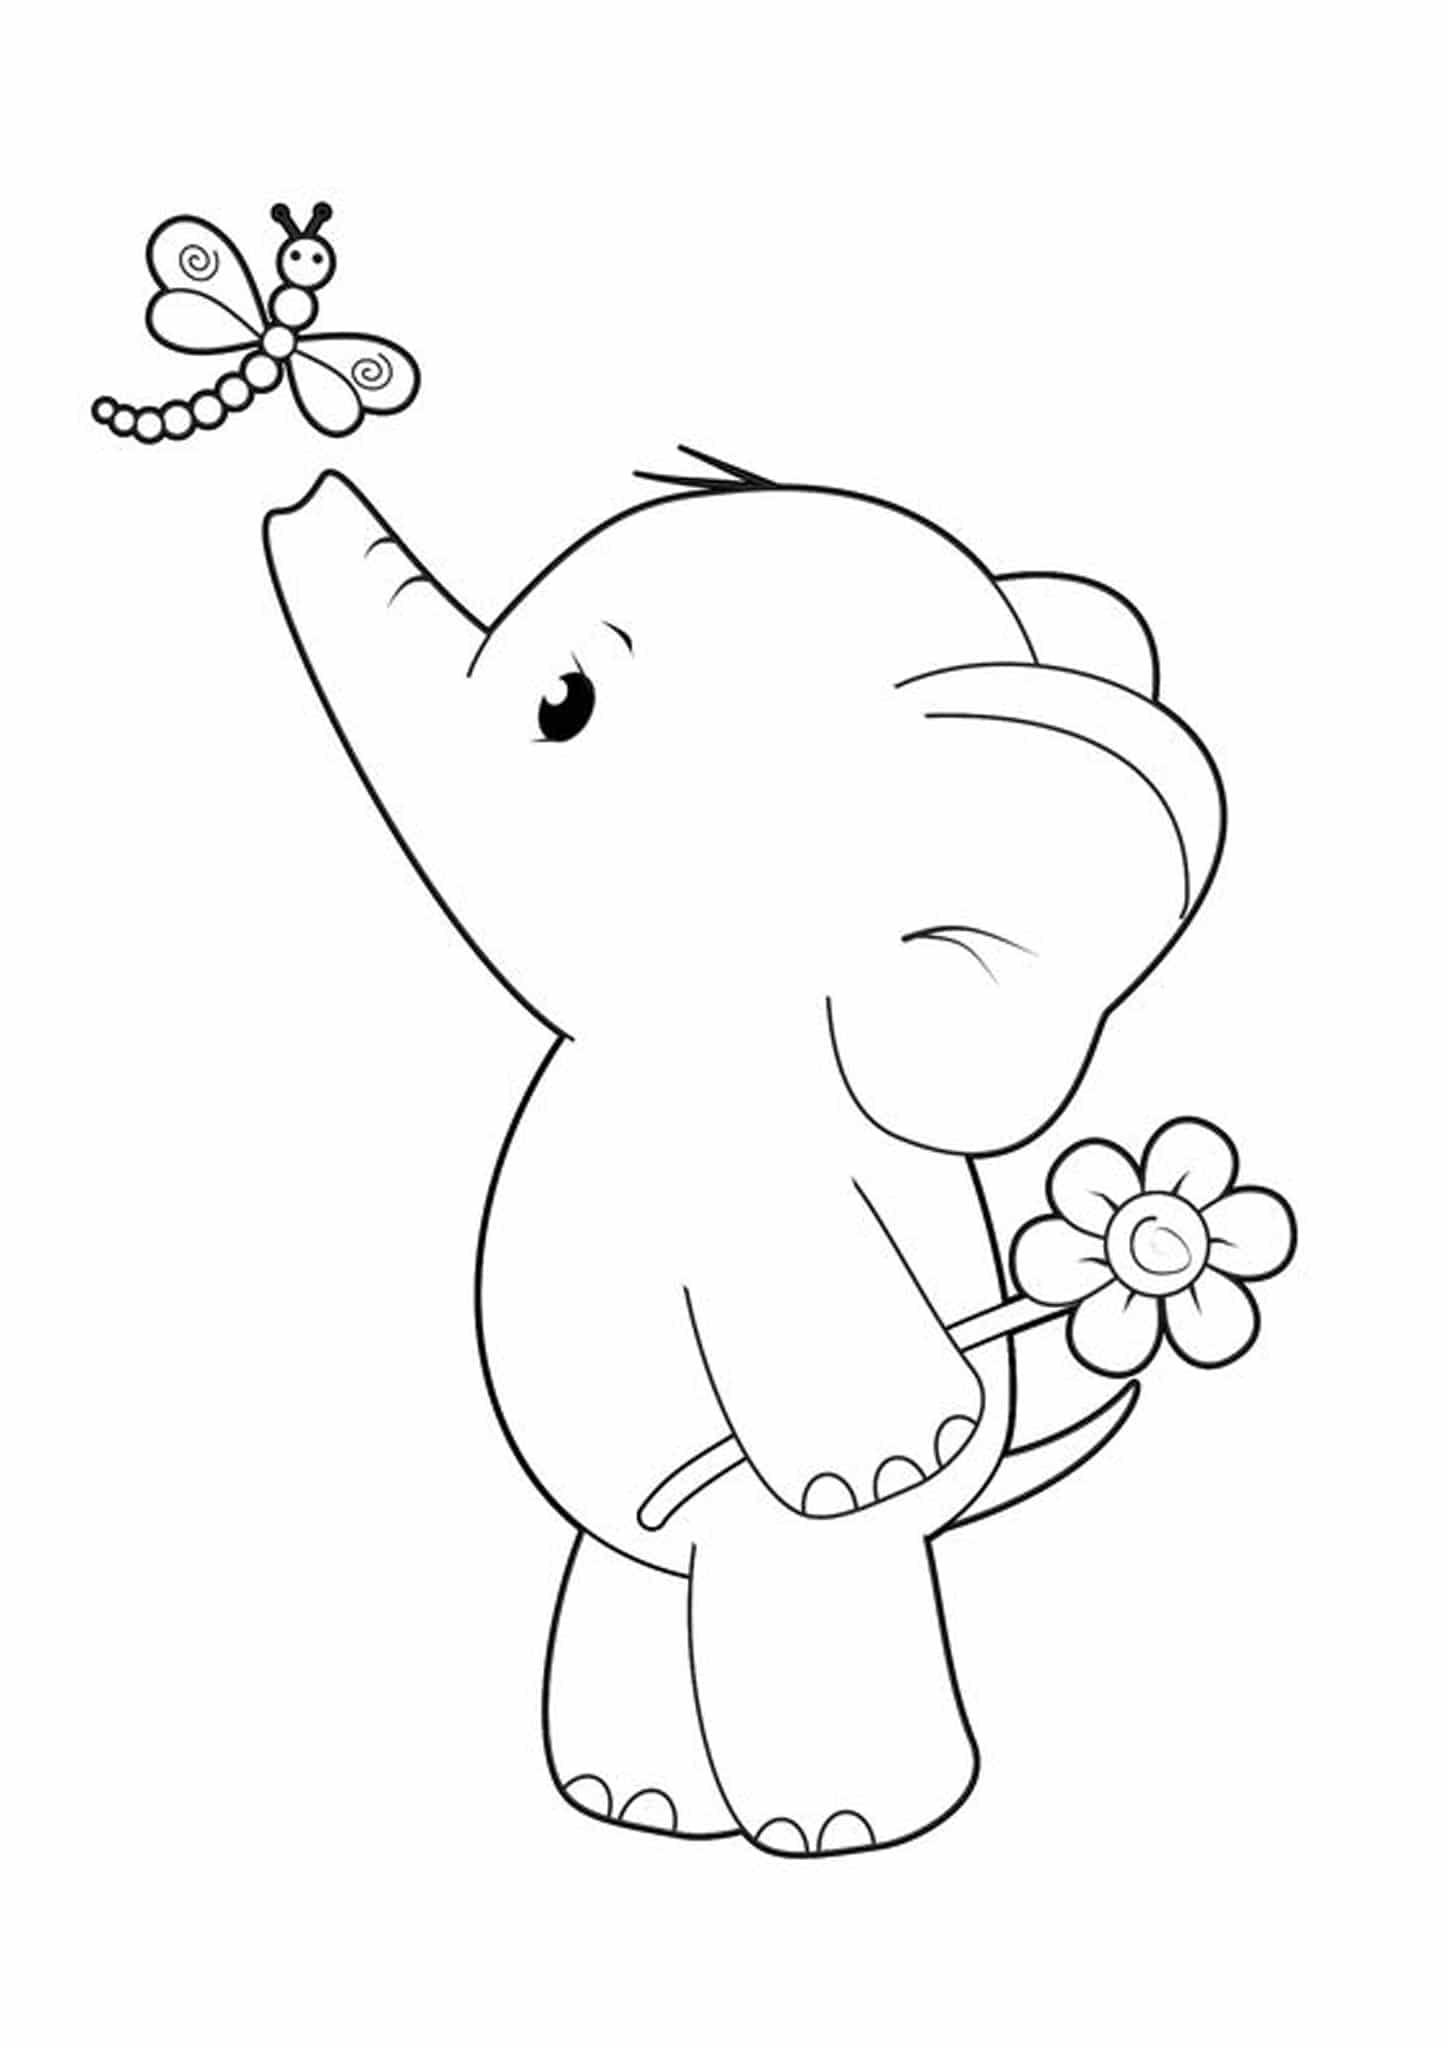 simple baby elephant coloring pages get this printable elephant coloring pages for kids 896531 elephant baby pages simple coloring